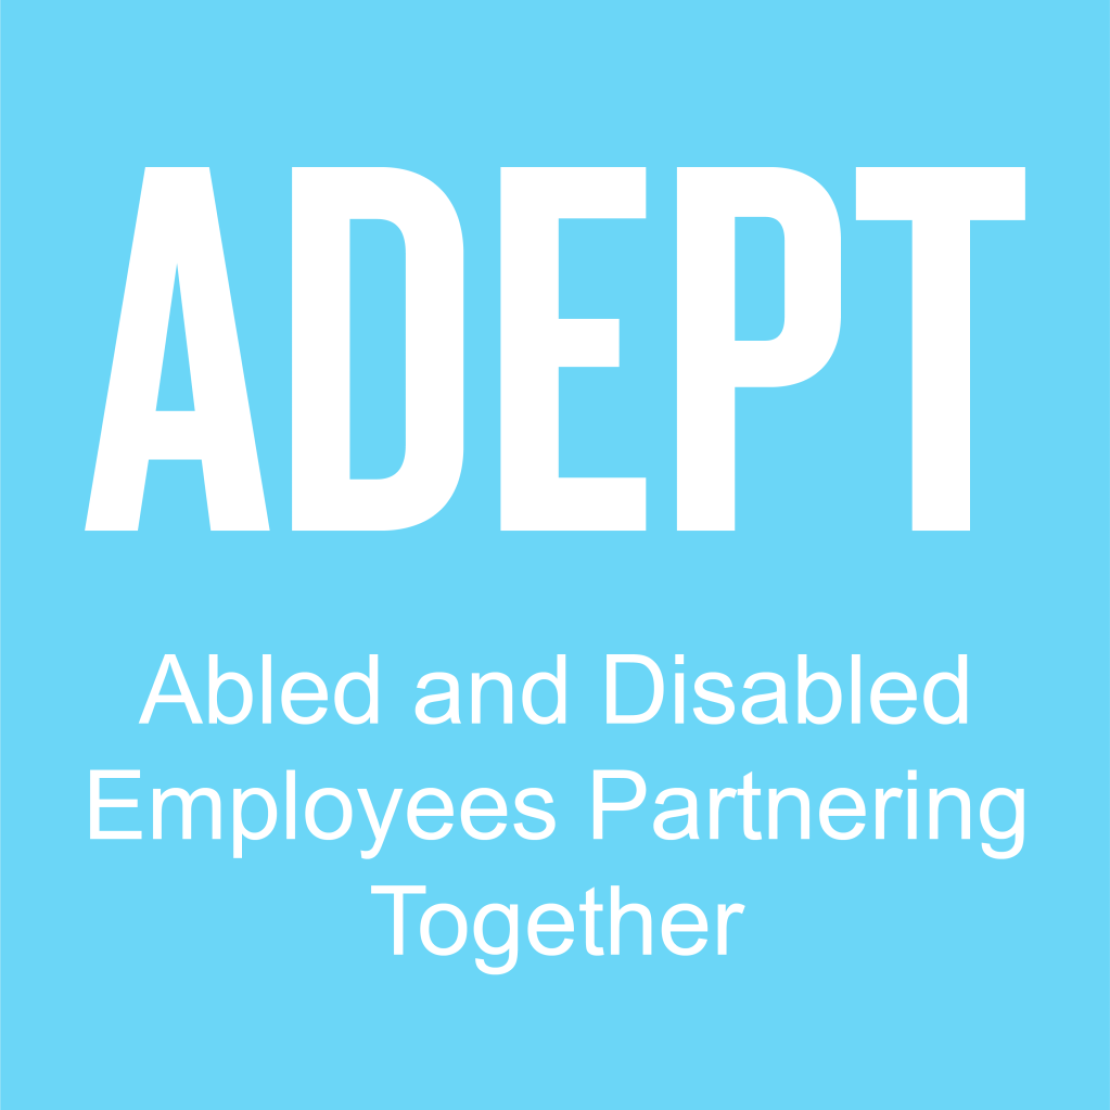 Abled and Disabled Employees Partnering Together